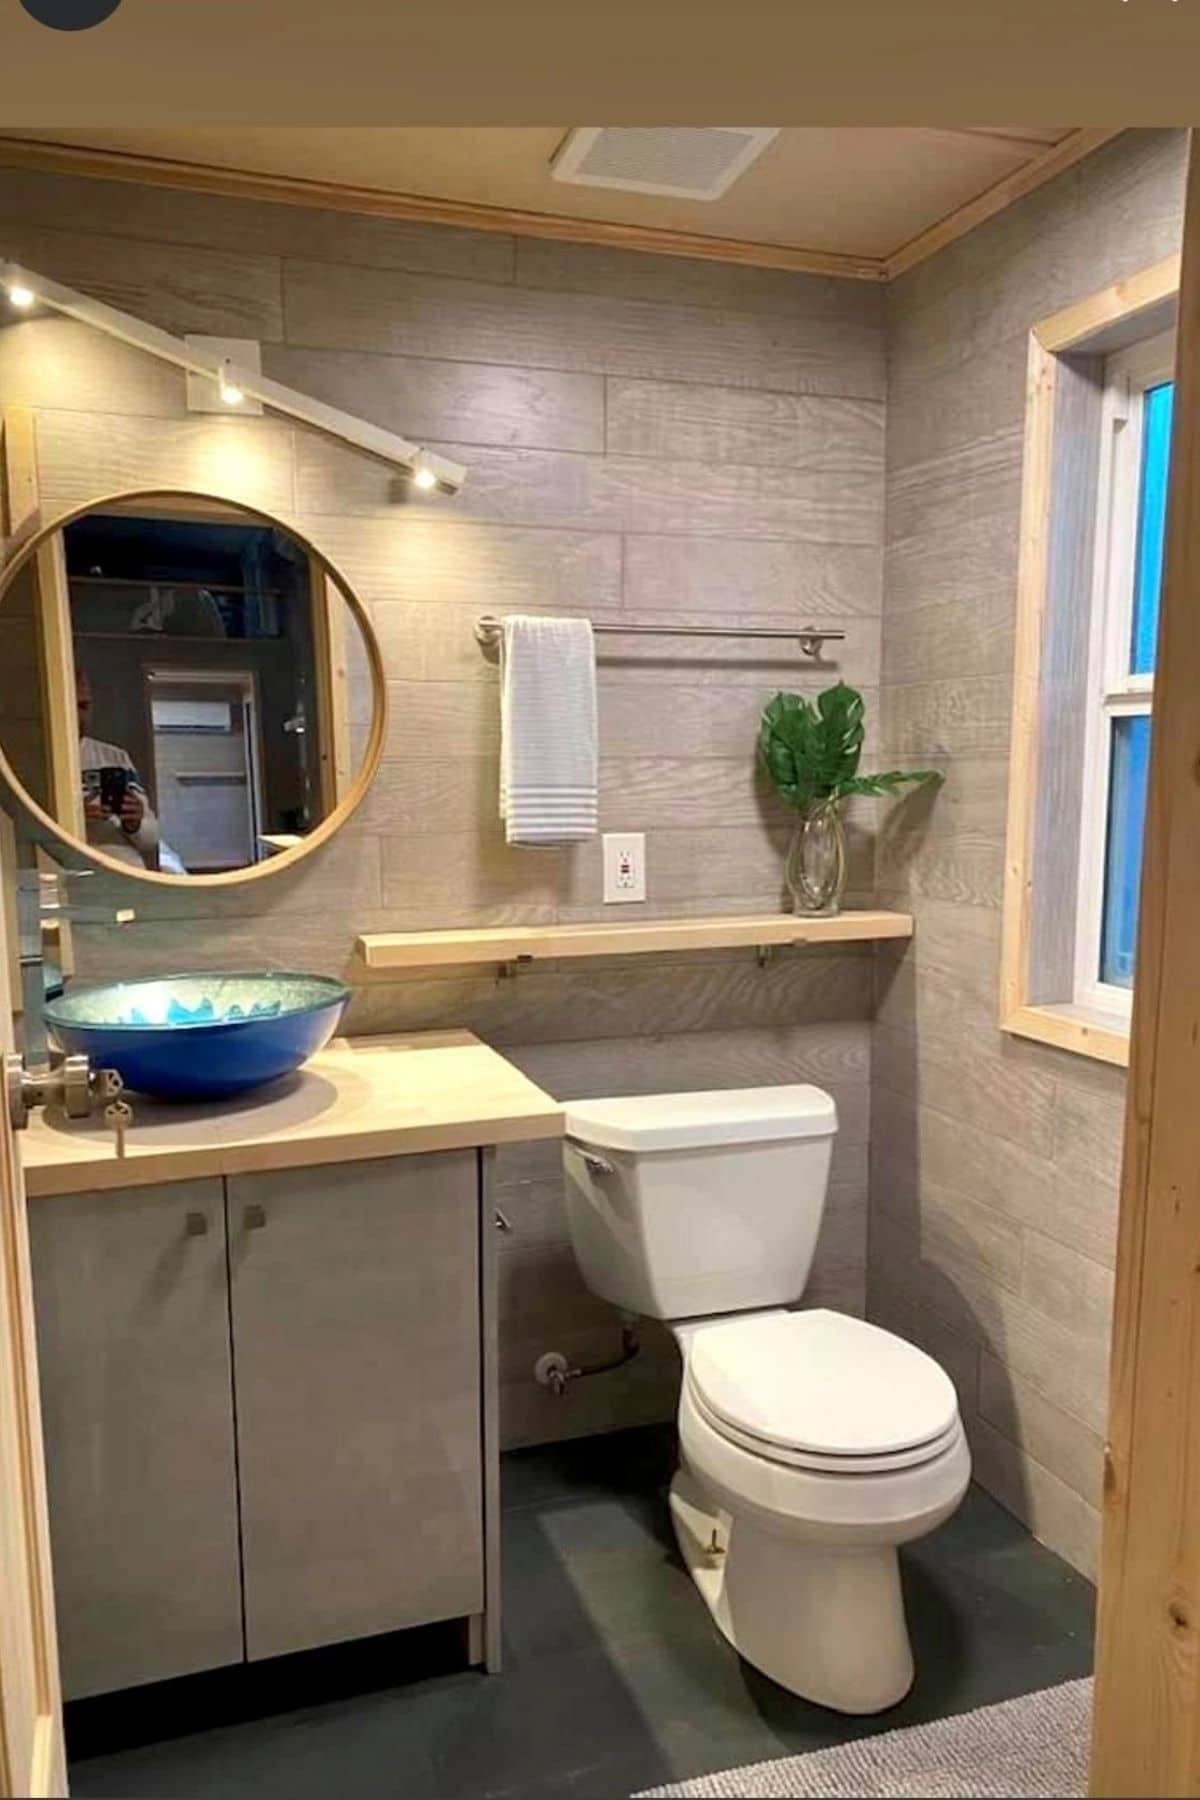 bathroom with light gray walls and light wood accents with blue bowl sink next to white flush toilet